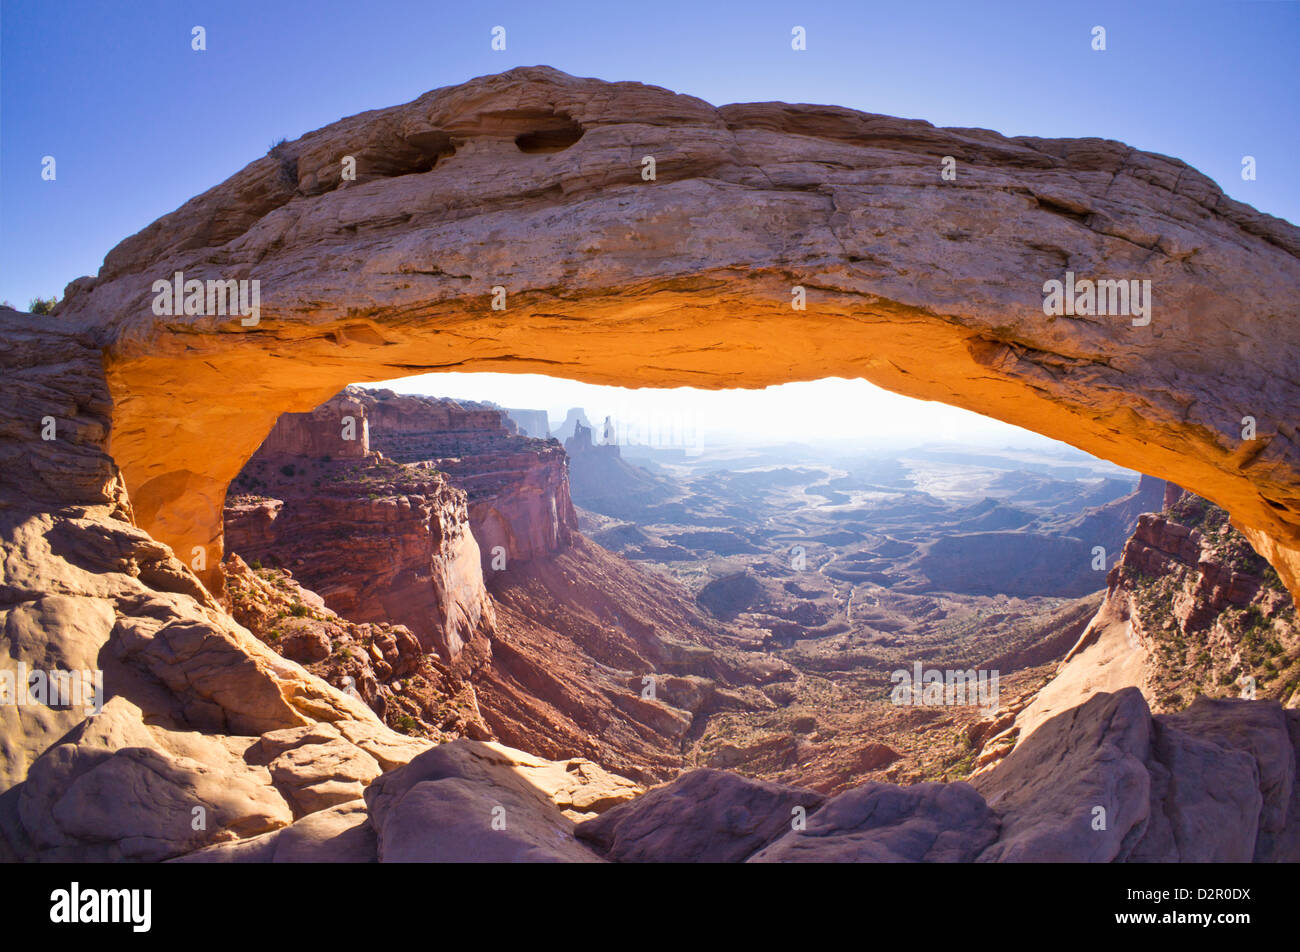 Mesa Arch sunrise, Island in the Sky, Canyonlands National Park, Utah, United States of America, North America - Stock Image